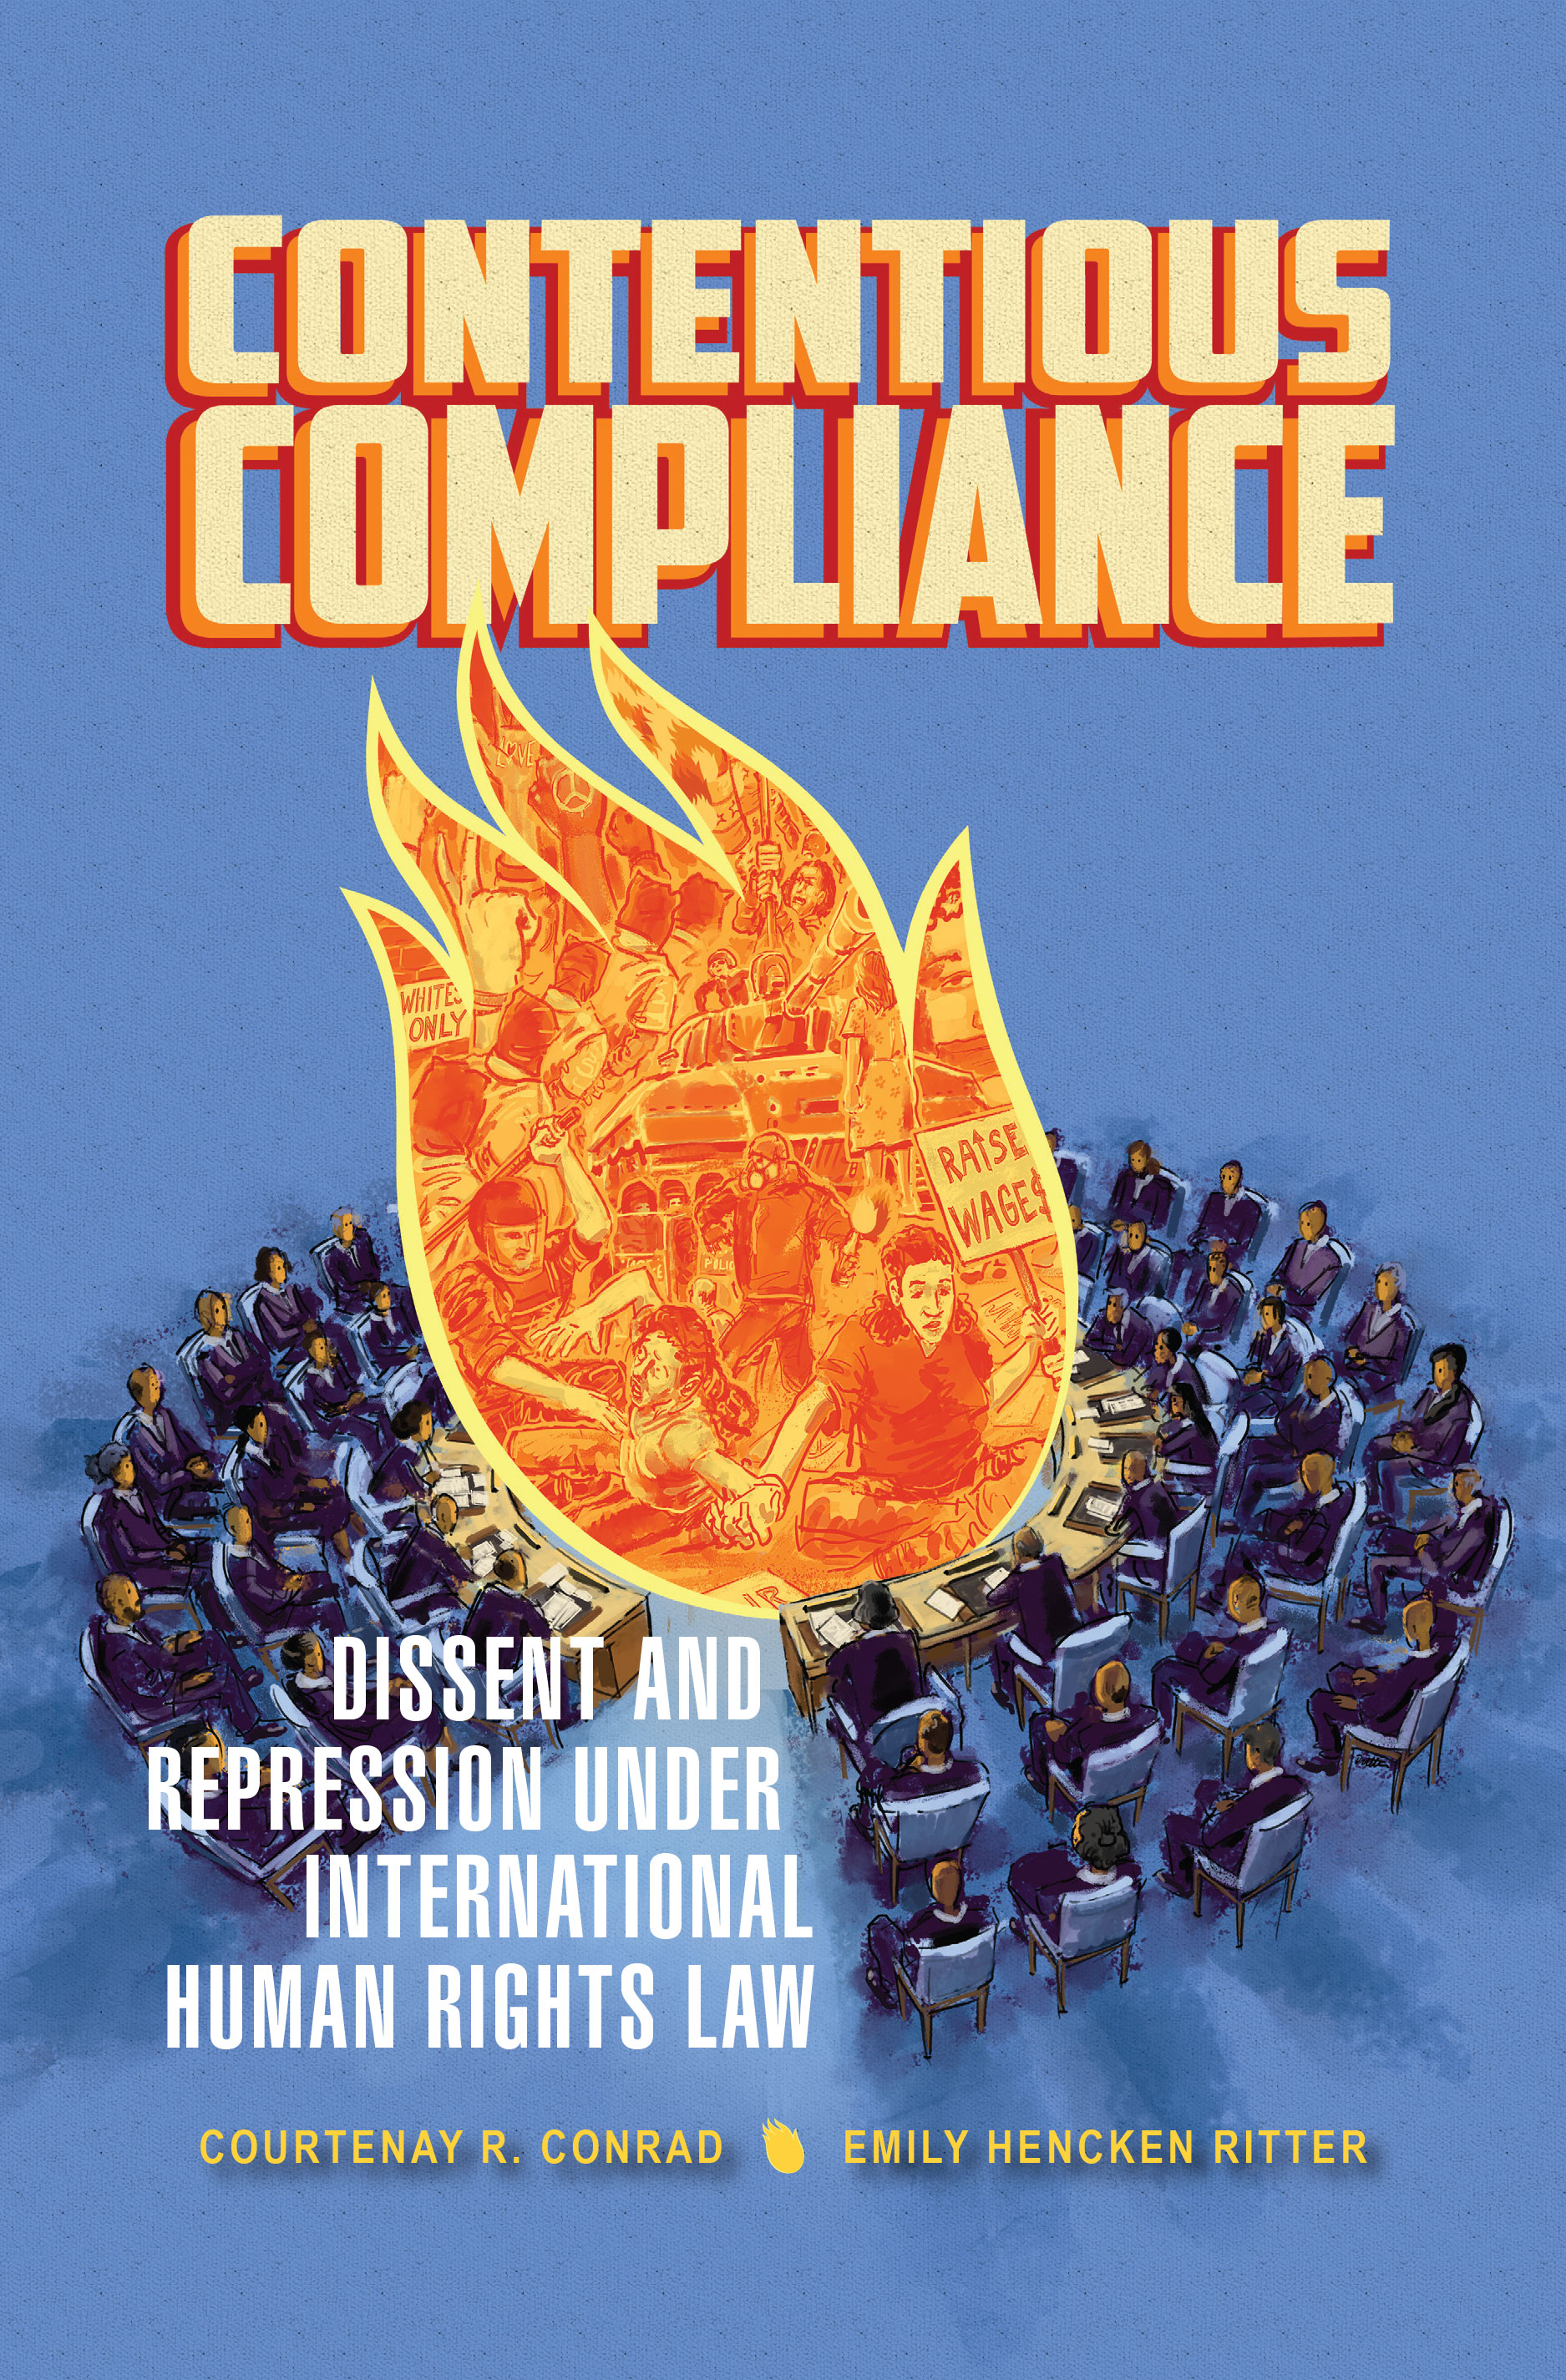 Book Cover   for Contentious Compliance: Dissent and Repression Under International Human Rights Law  by  Courtenay R. Conrad  &  Emily Hencken Ritter